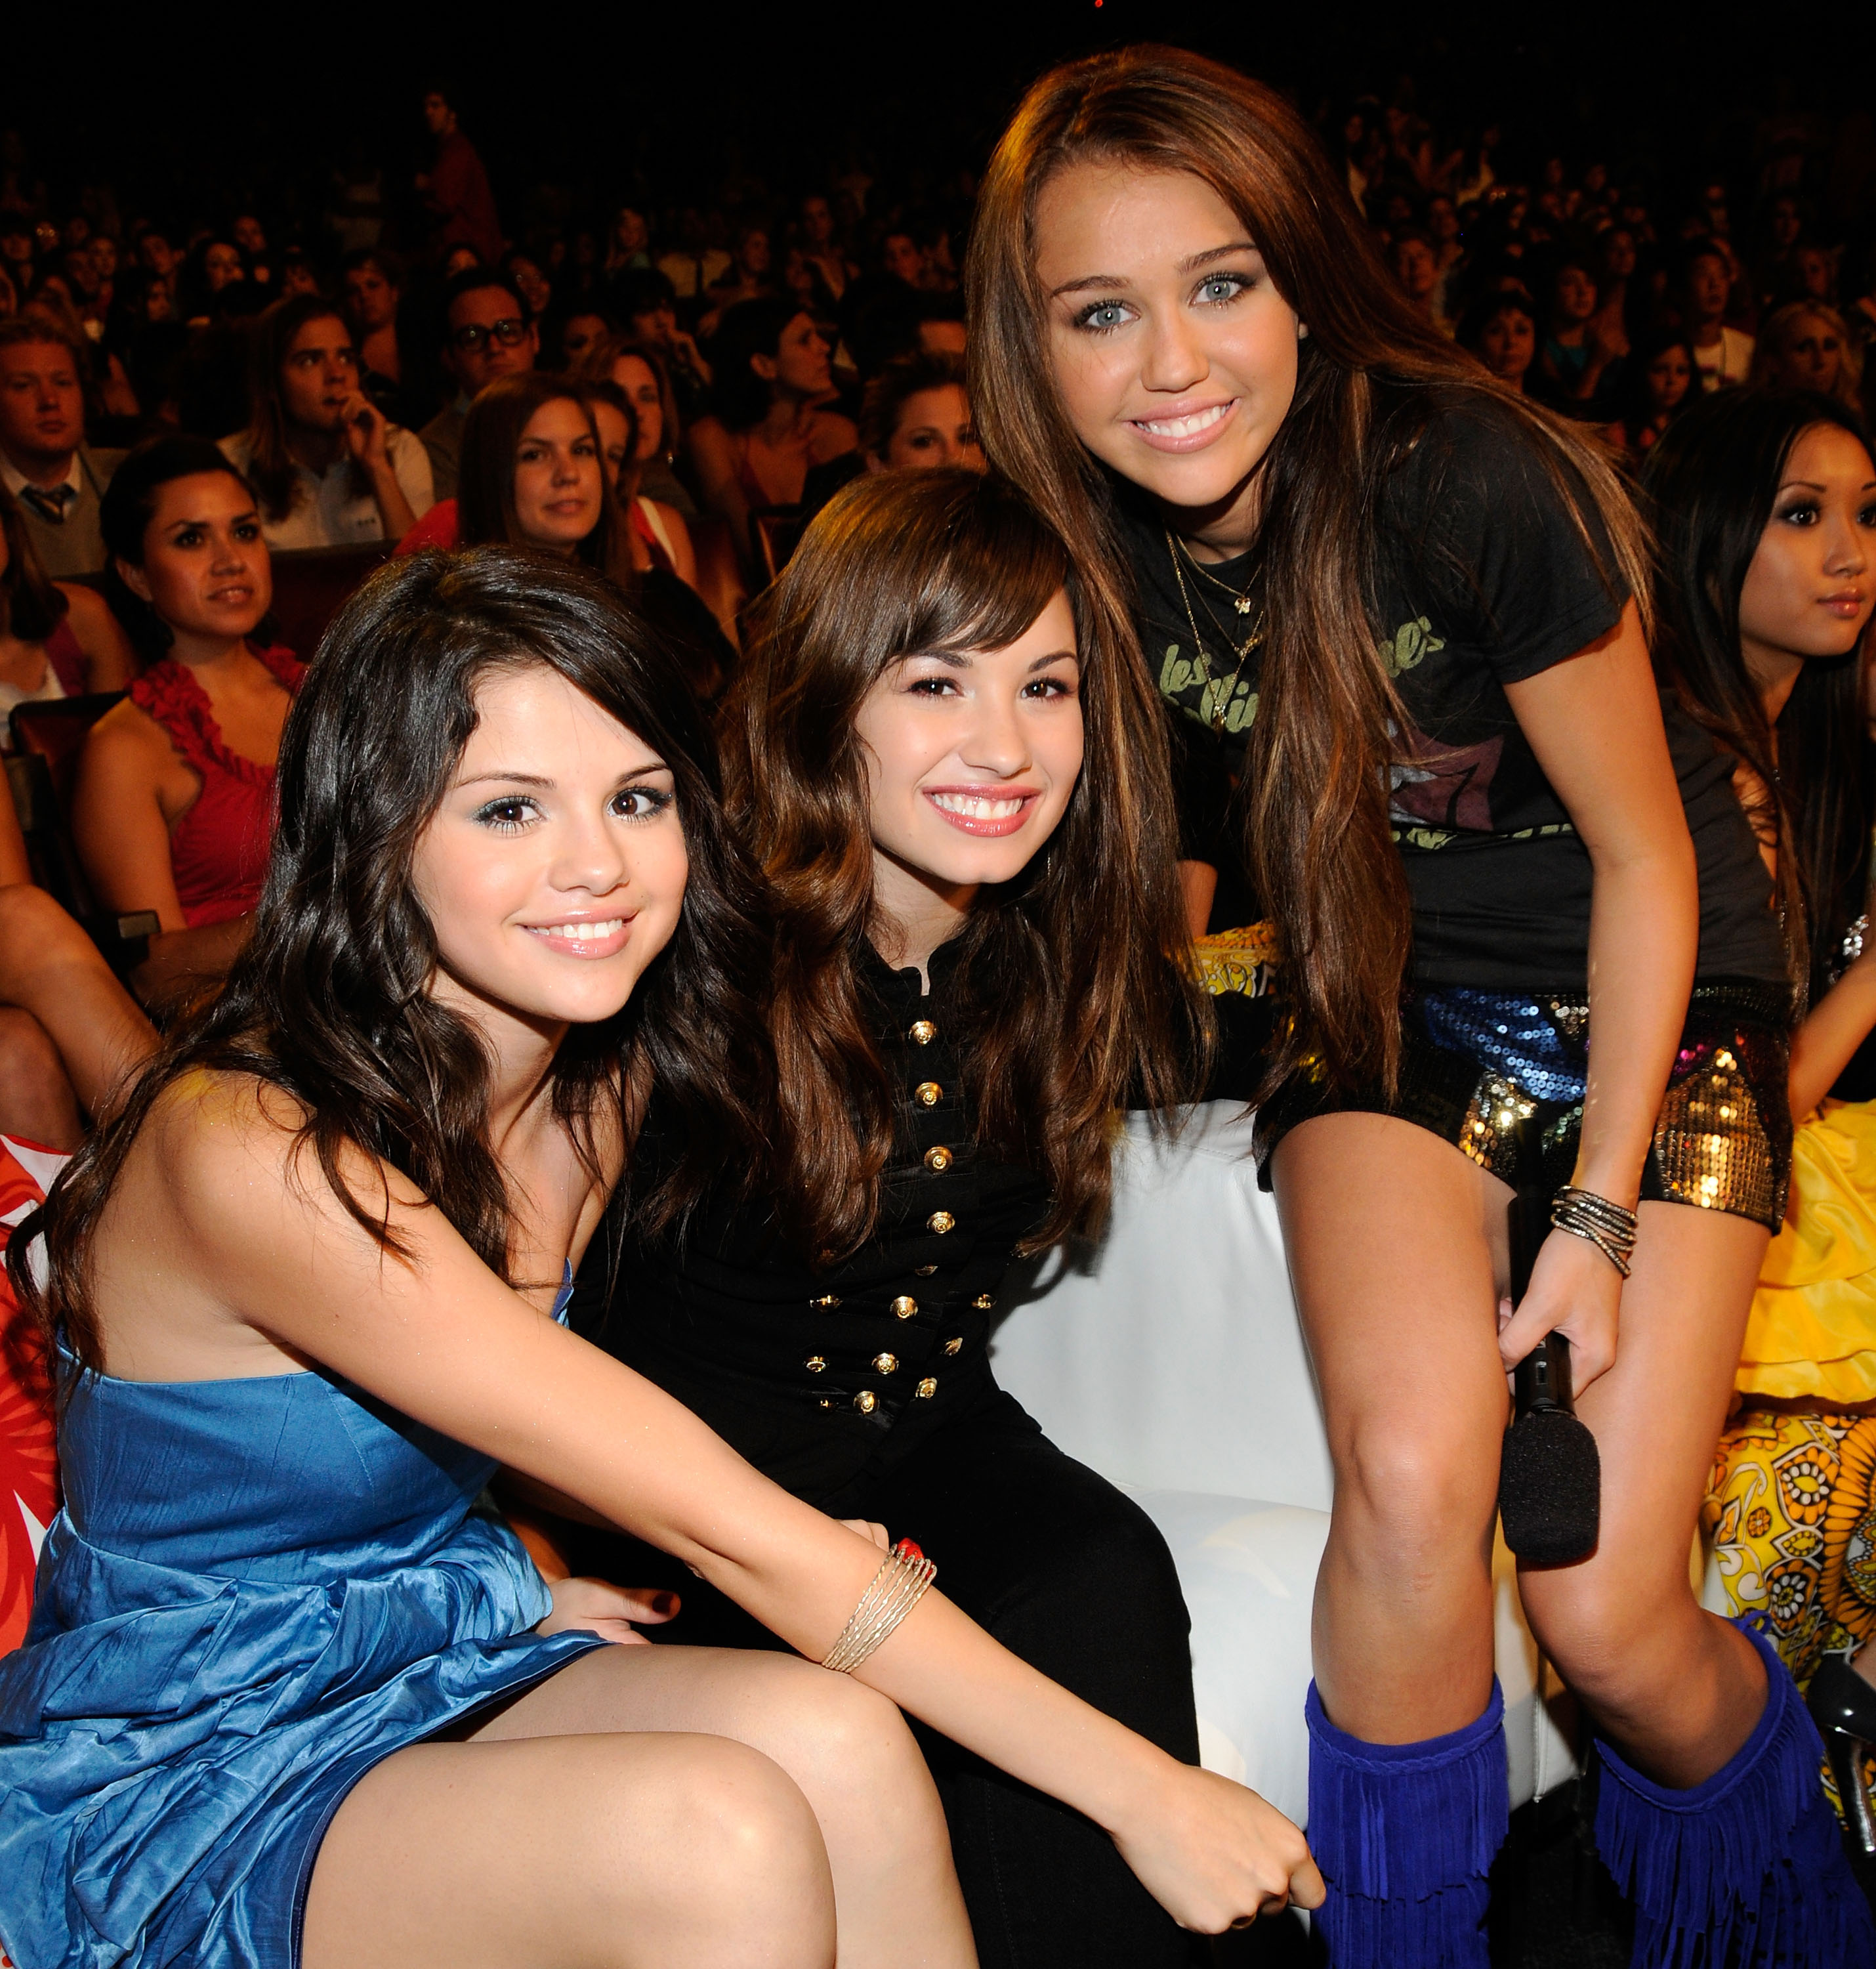 (EXCLUSIVE, Premium Rates Apply) LOS ANGELES, CA - AUGUST 03: ***EXCLUSIVE*** Actress Selena Gomez, singer Demi Lovato and host Miley Cyrus during the 2008 Teen Choice Awards at Gibson Amphitheater on August 3, 2008 in Los Angeles, California. (Photo by K Mazur/TCA 2008/WireImage)